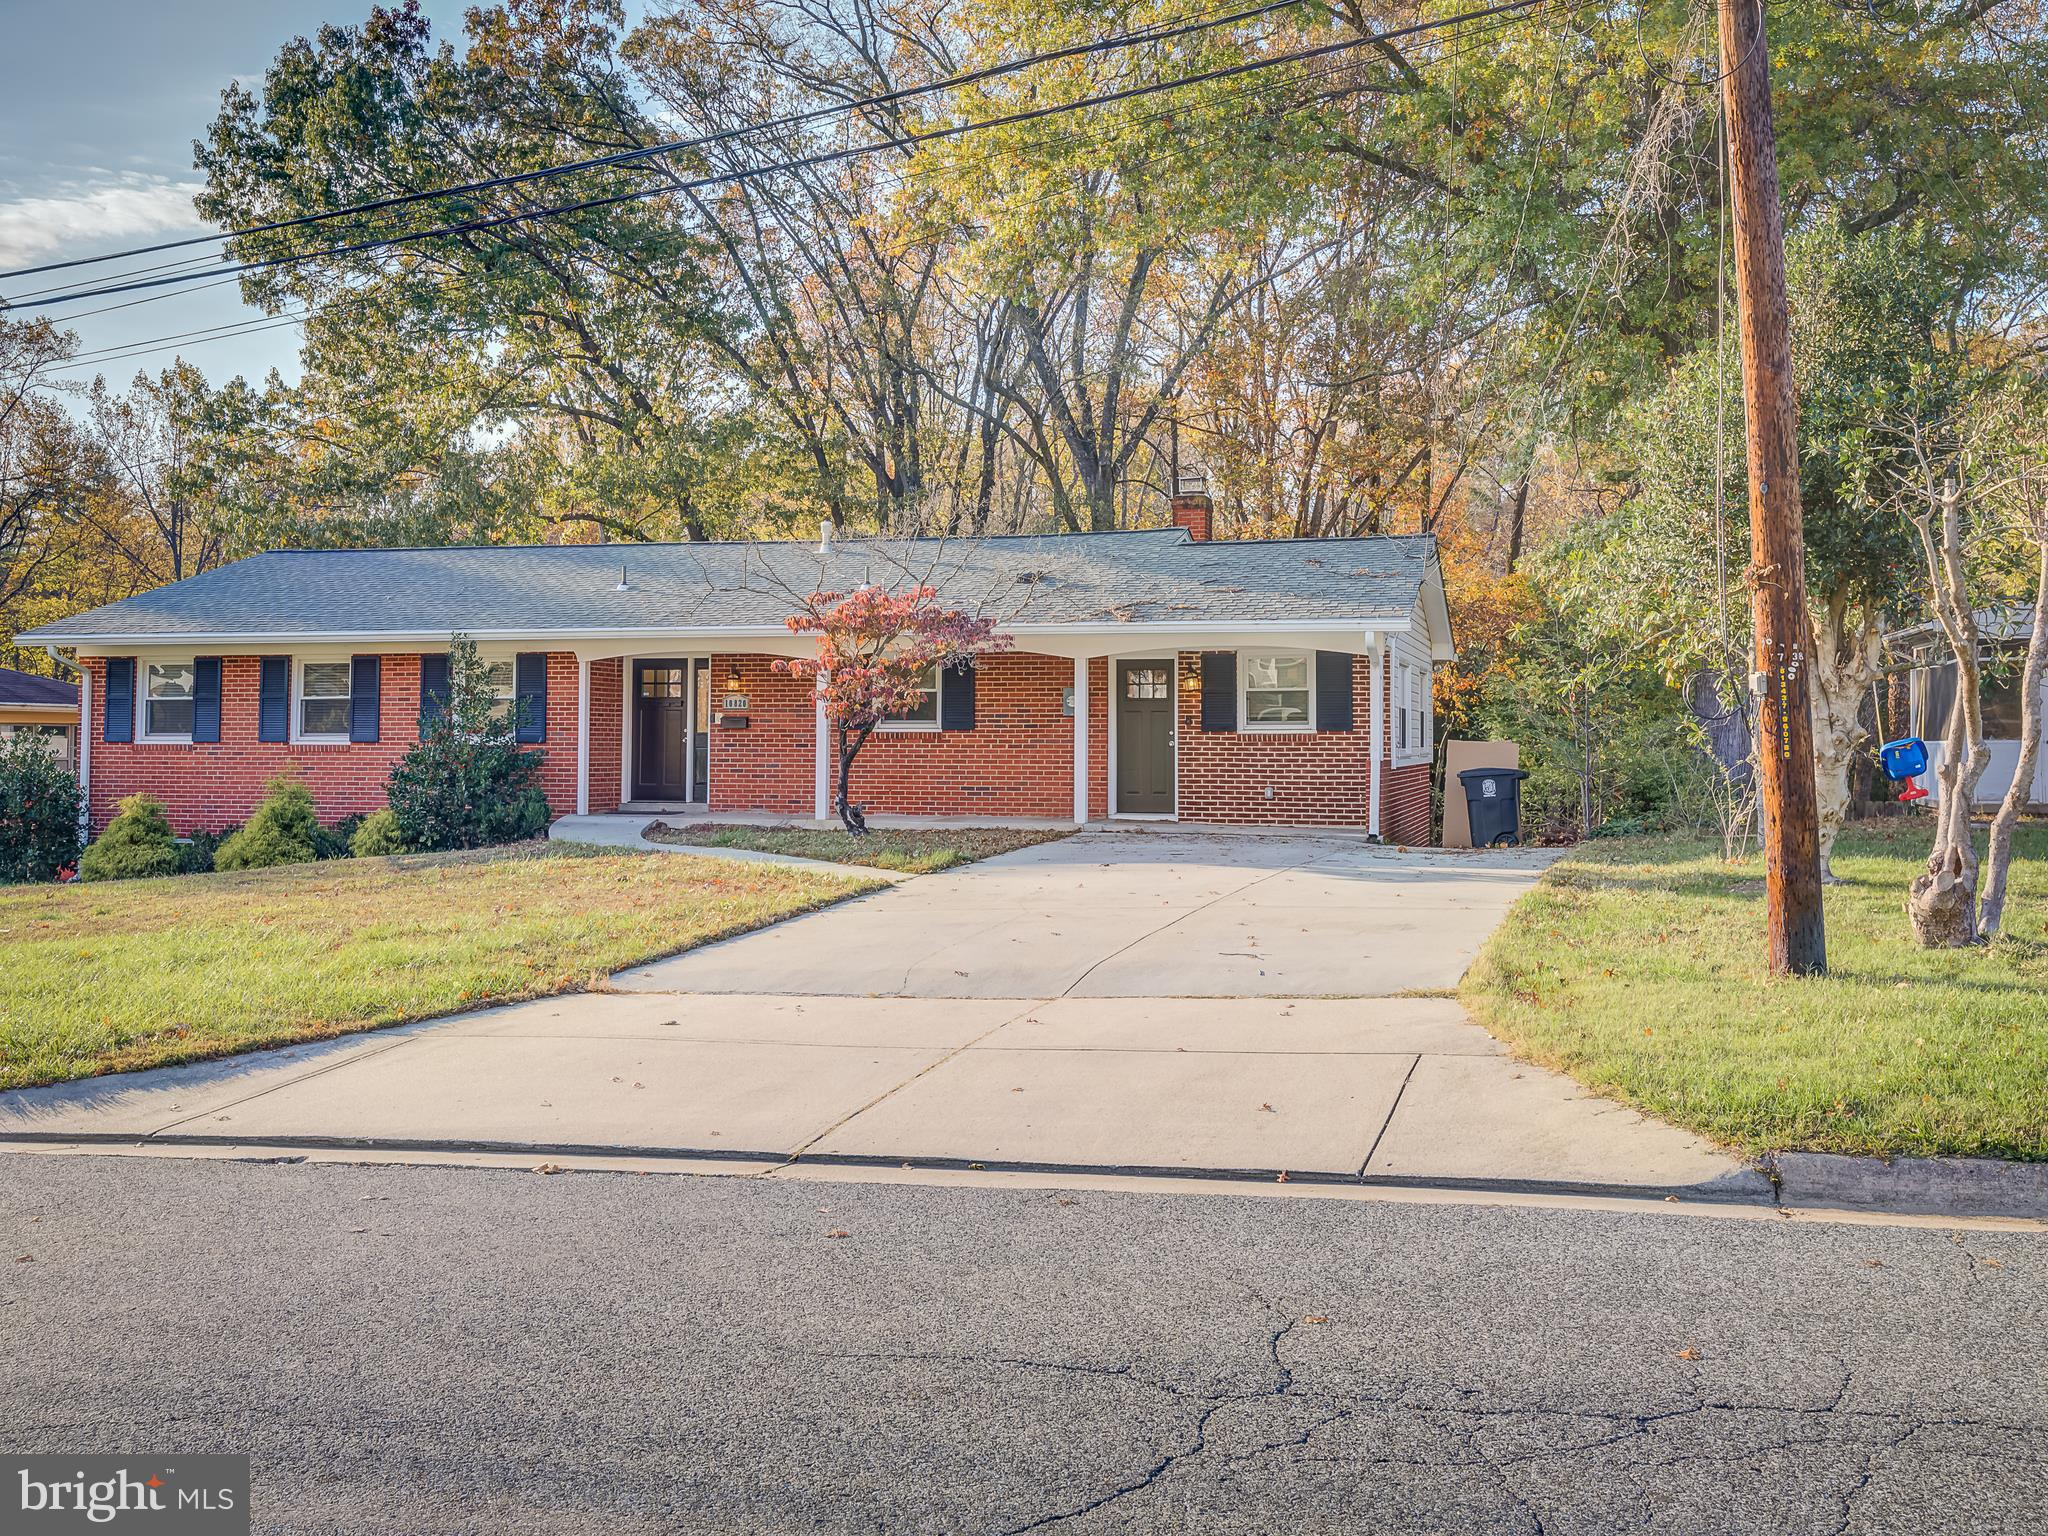 10820 PLEASANT ACRES DRIVE, HYATTSVILLE, MD 20783